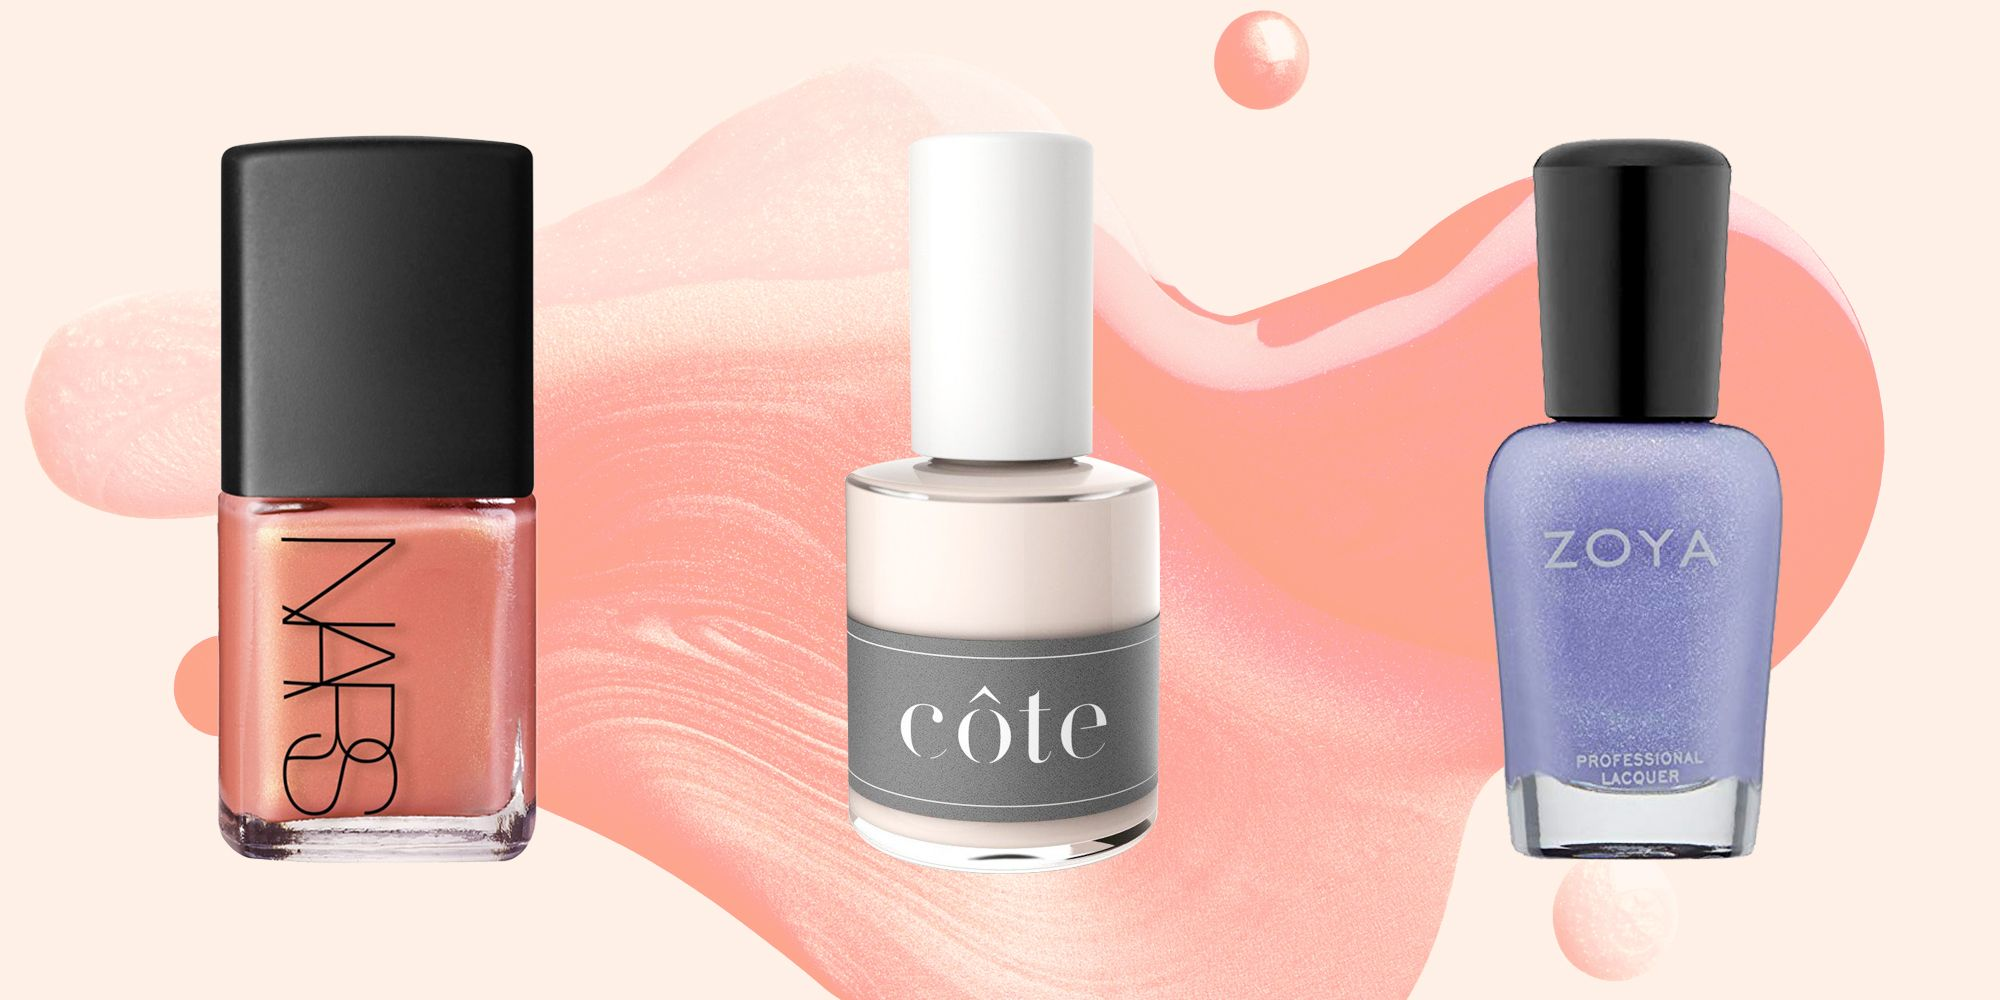 12 Best Summer Nail Polish Colors - Trendy Nail Shades for Summer 2019